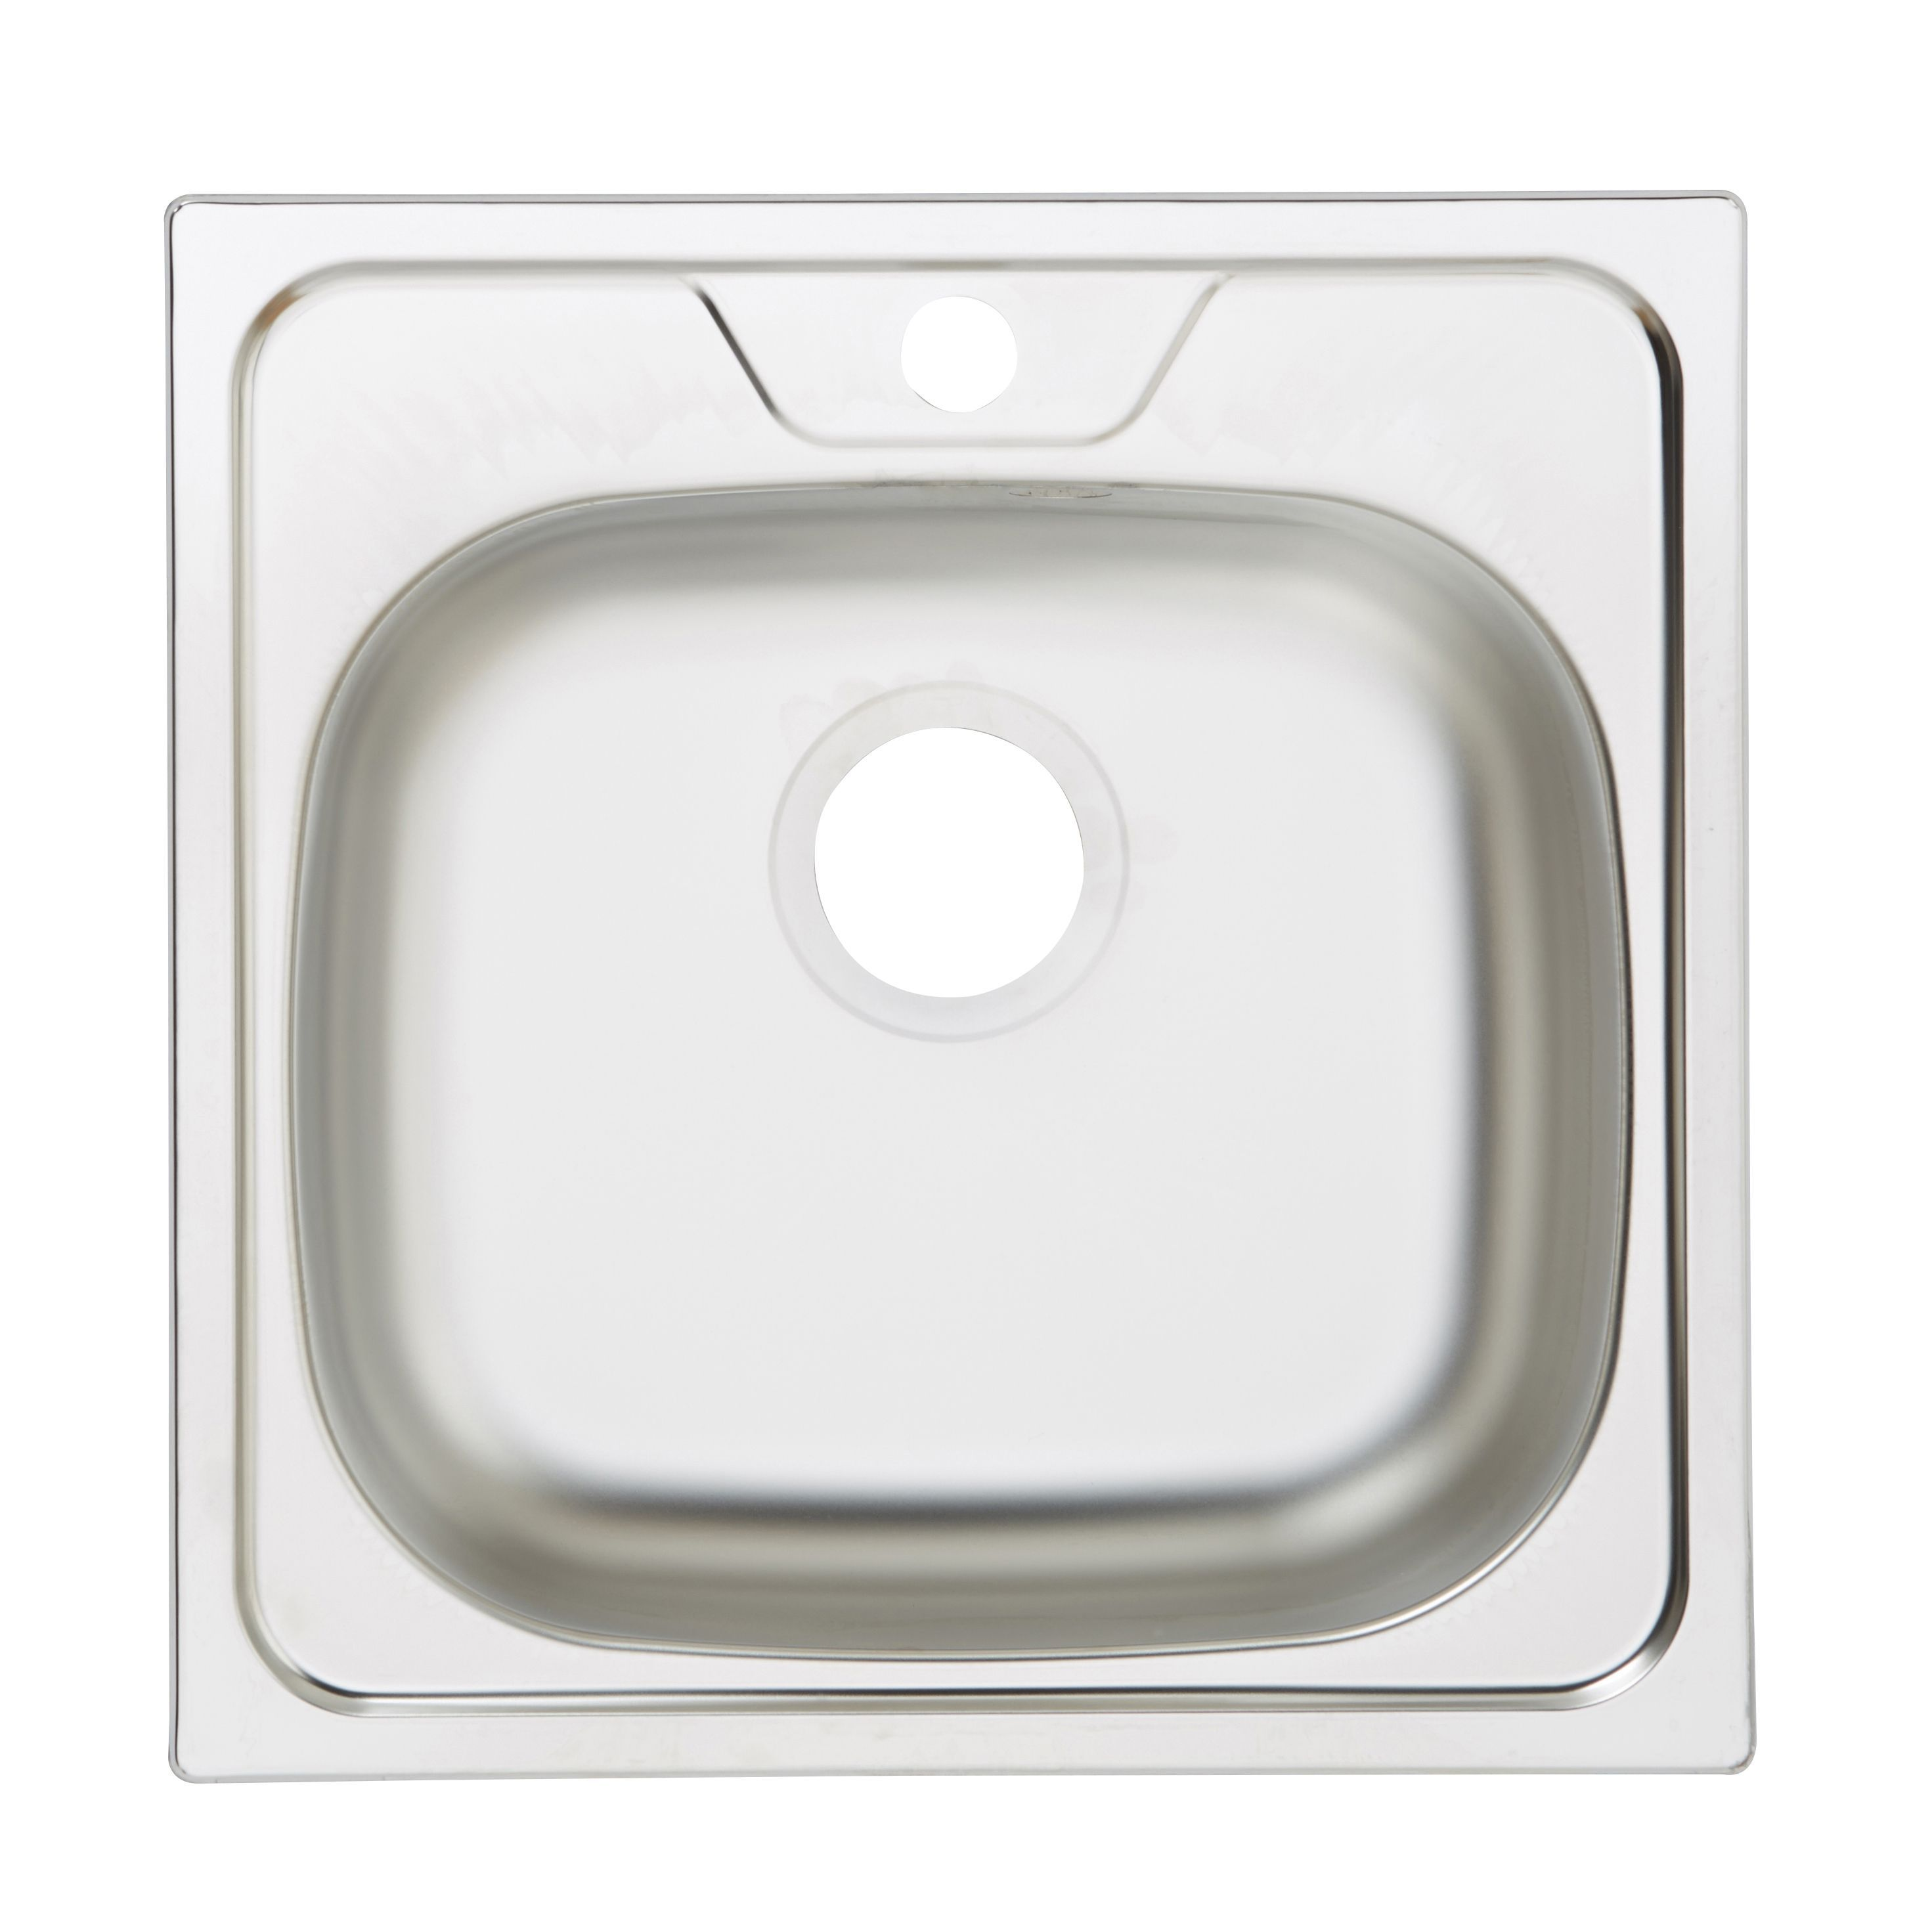 Single bowl stainless steel square kitchen sink inset chip - Square stainless steel bathroom sink ...